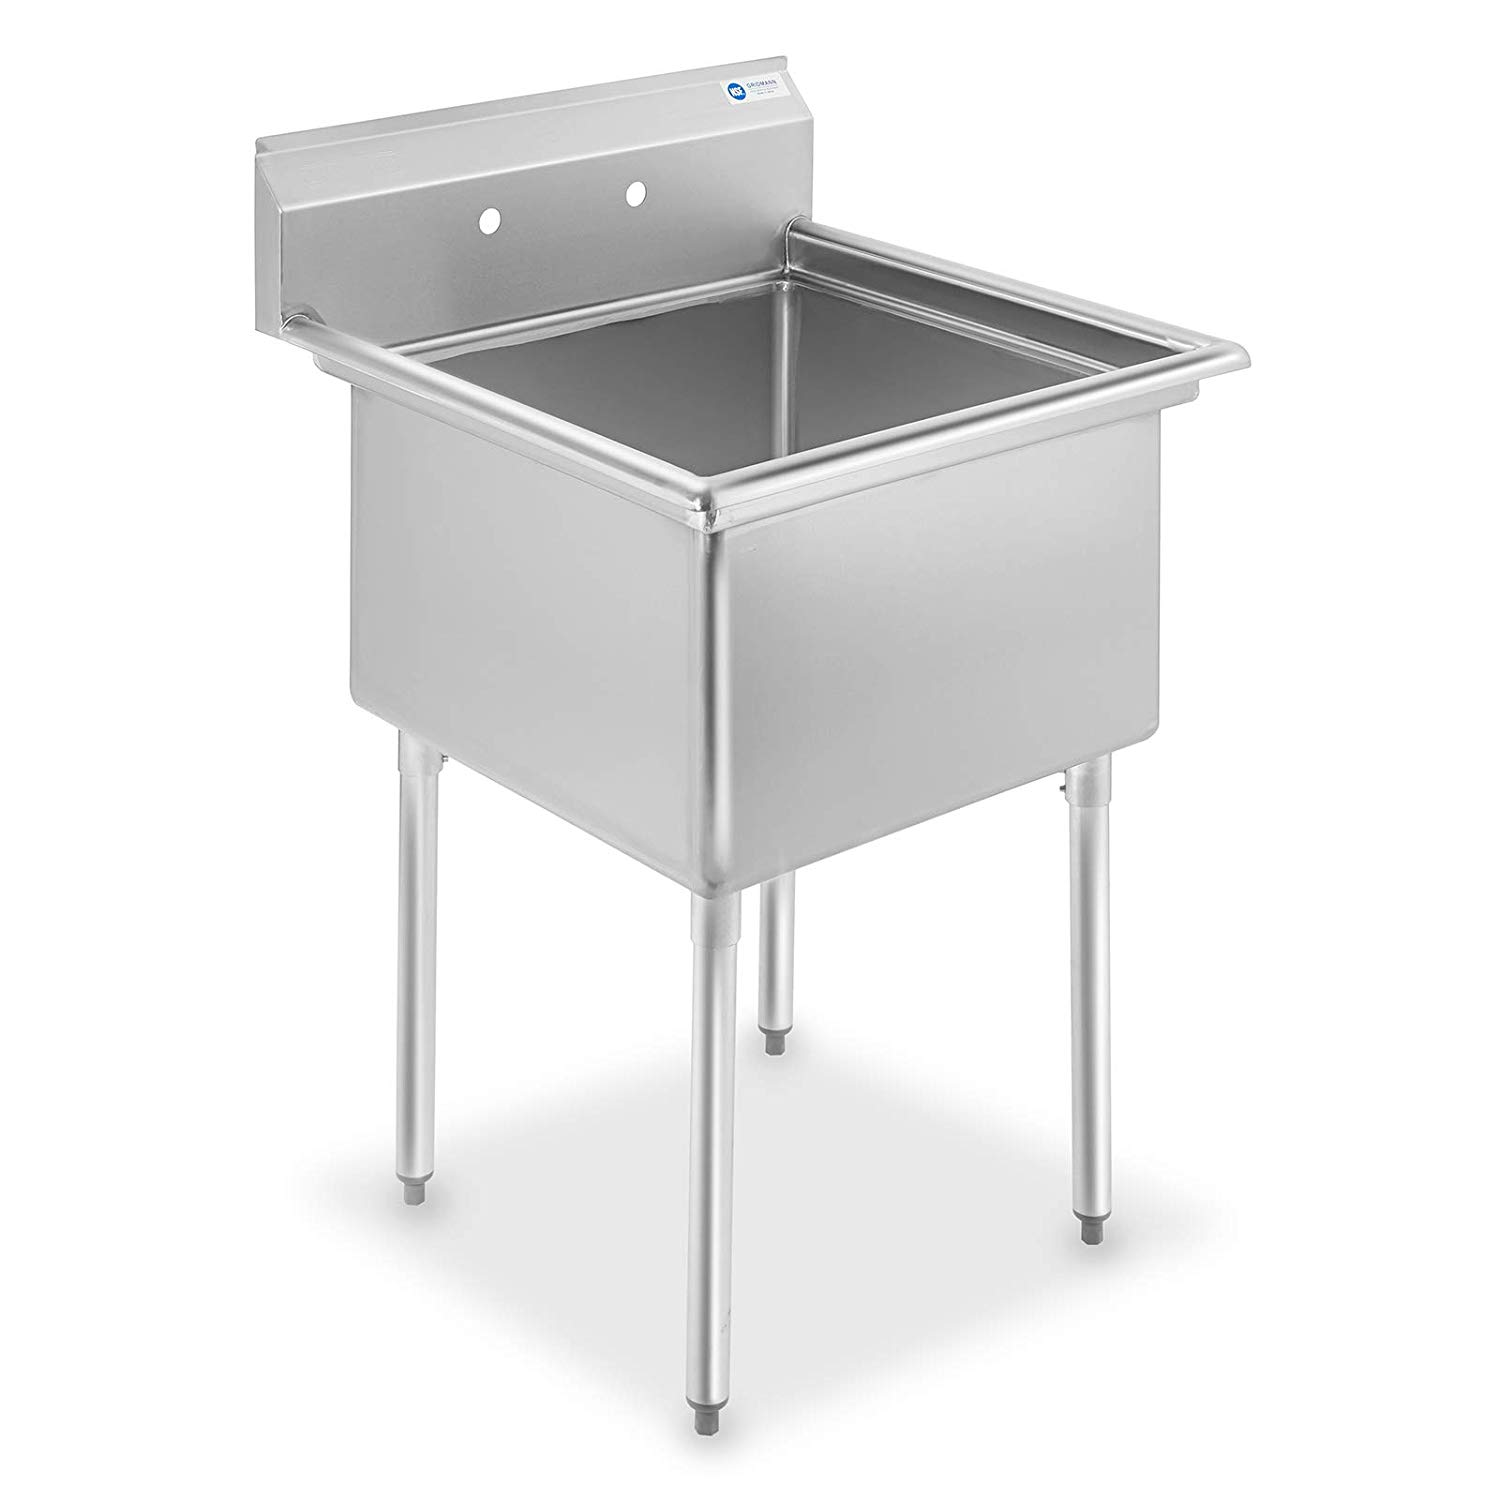 GRIDMANN 1 Compartment NSF Stainless Steel Commercial Kitchen Prep & Utility Sink - 30 in. Wide